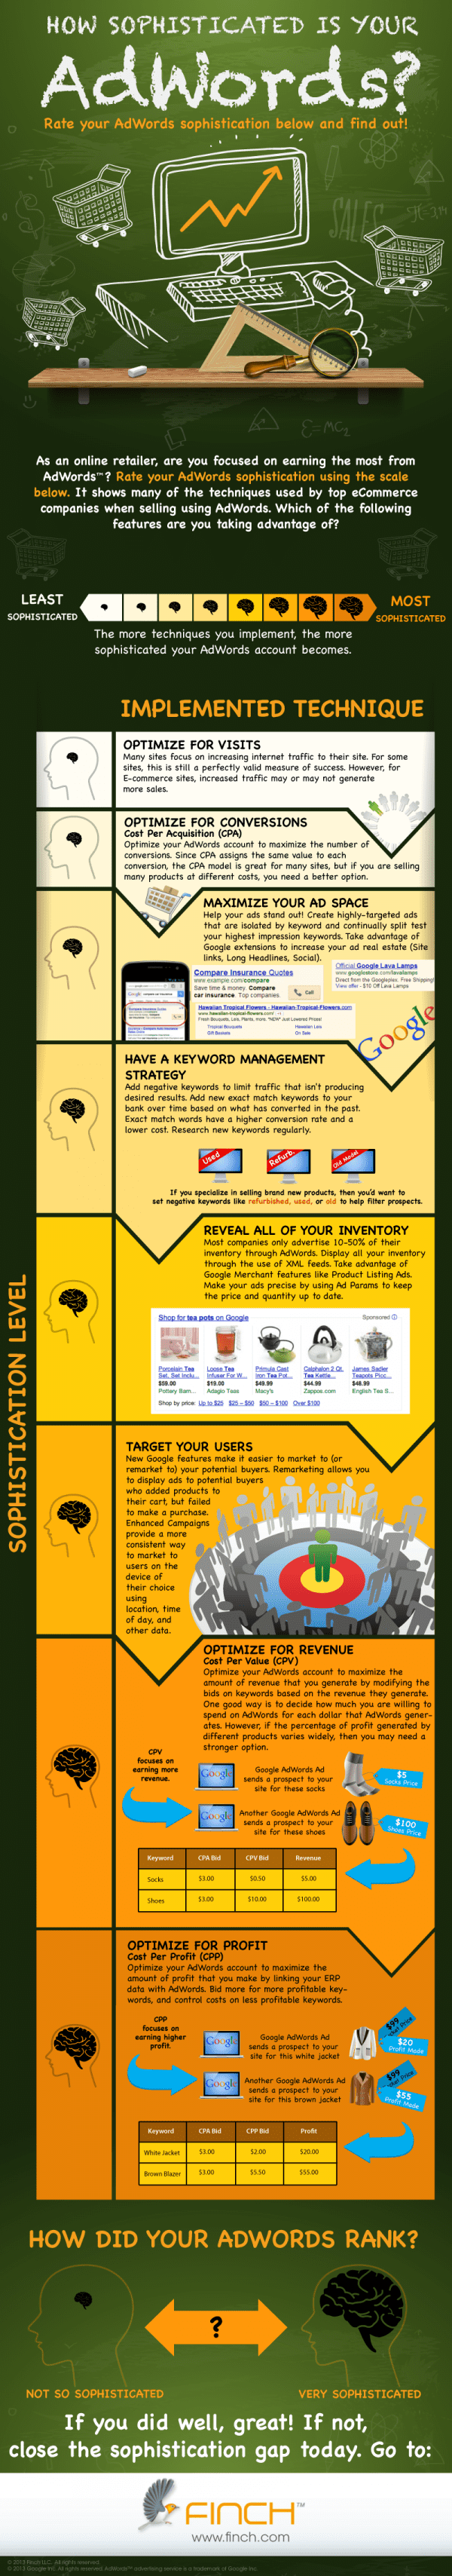 ppc strategy template - how sophisticated are your adwords campaigns infographic